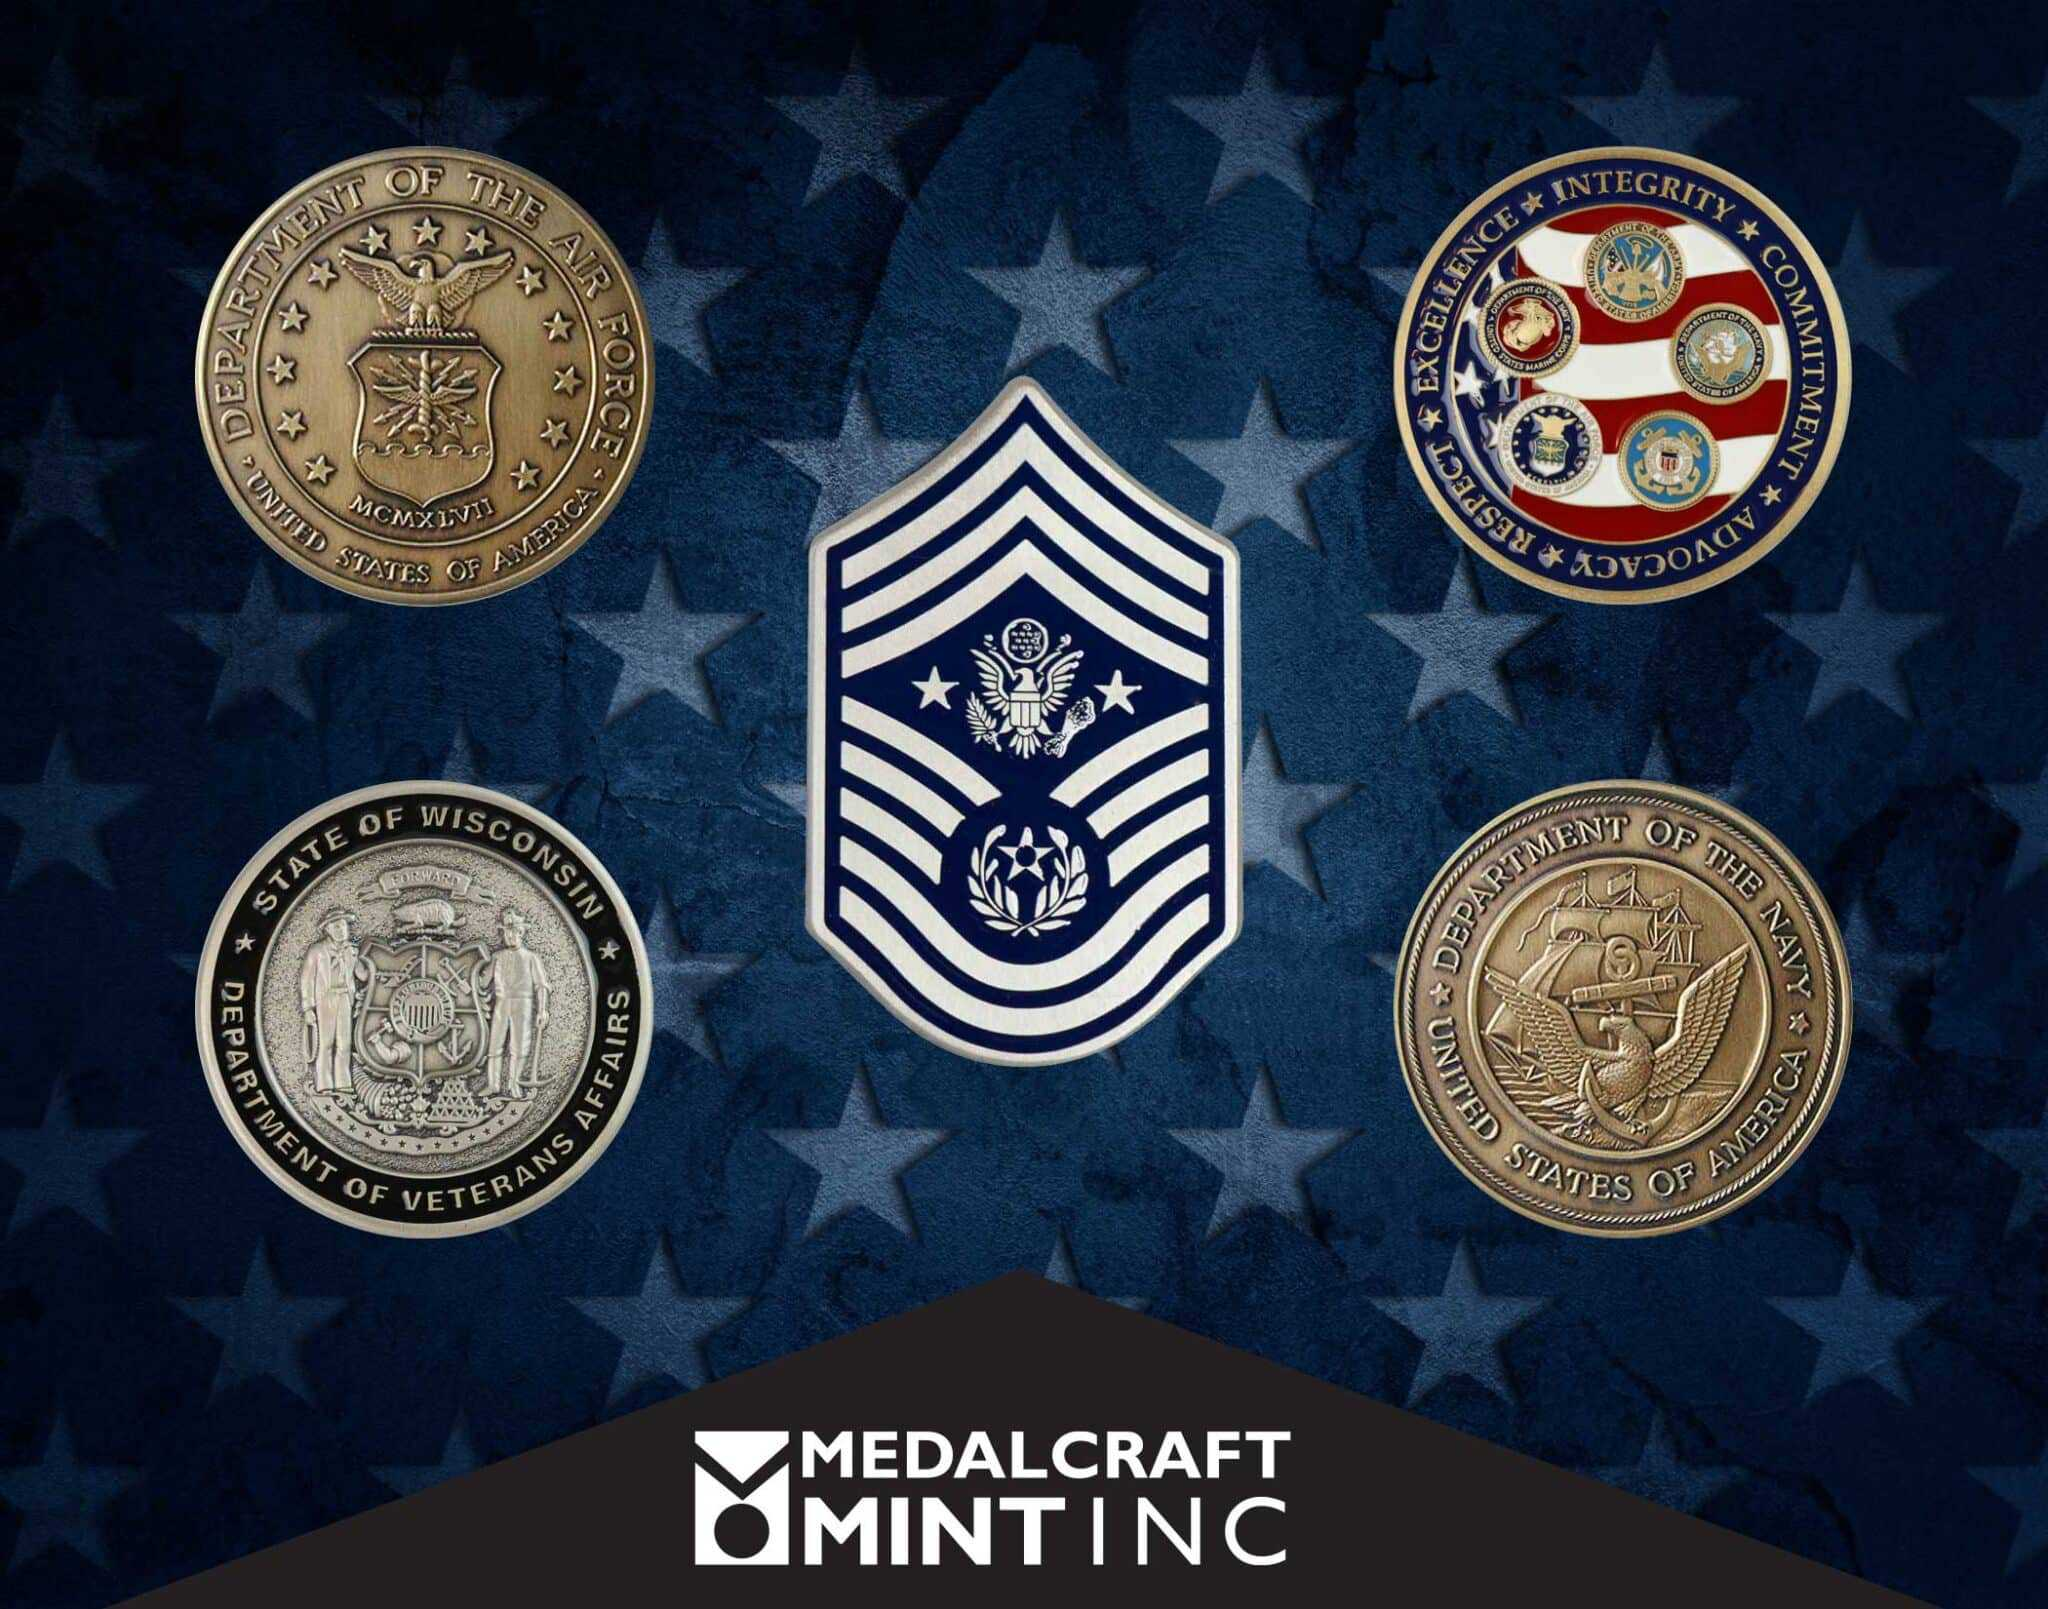 Military coins provide tangible reminder of service, commitment